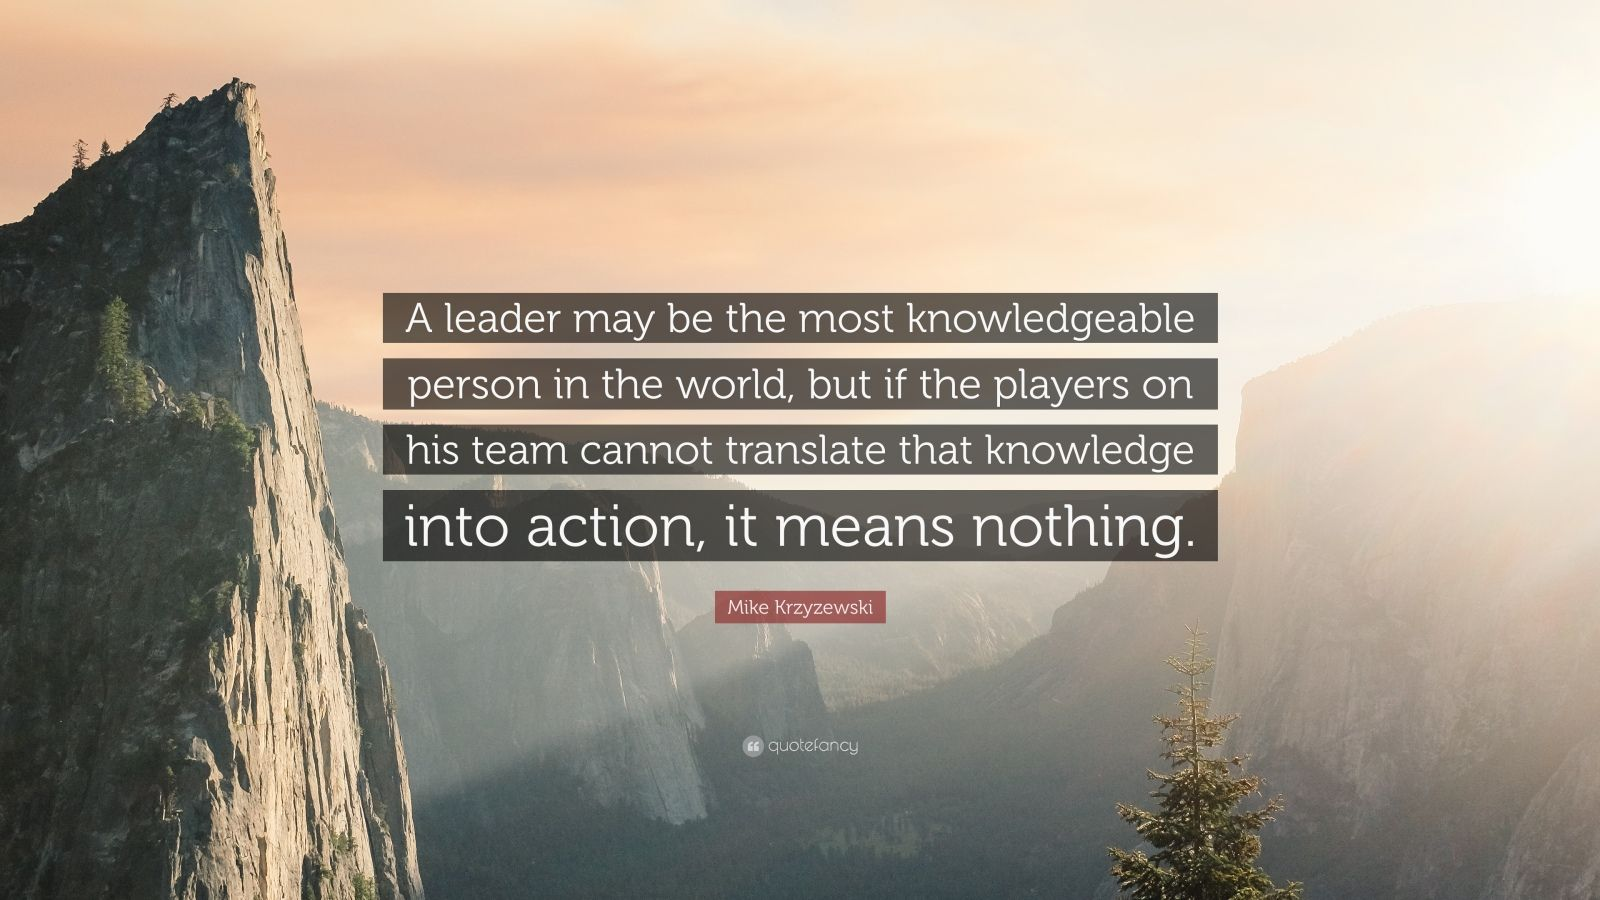 """Mike Krzyzewski Quote: """"A leader may be the most knowledgeable person in the world, but if the players on his team cannot translate that knowledge into action, it means nothing."""""""